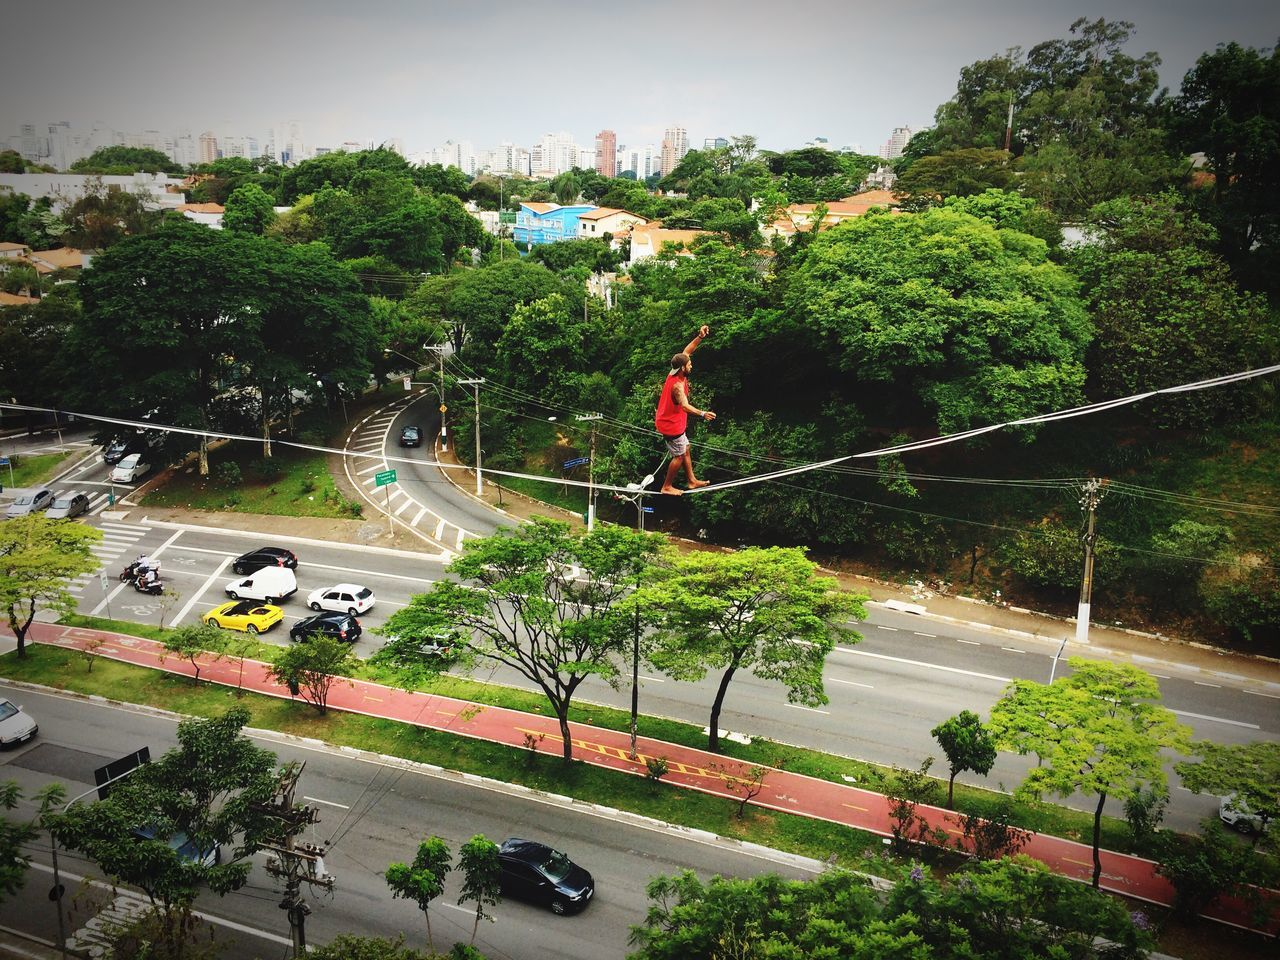 tree, high angle view, day, transportation, real people, outdoors, mid-air, growth, road, nature, full length, water, men, architecture, one person, sky, people